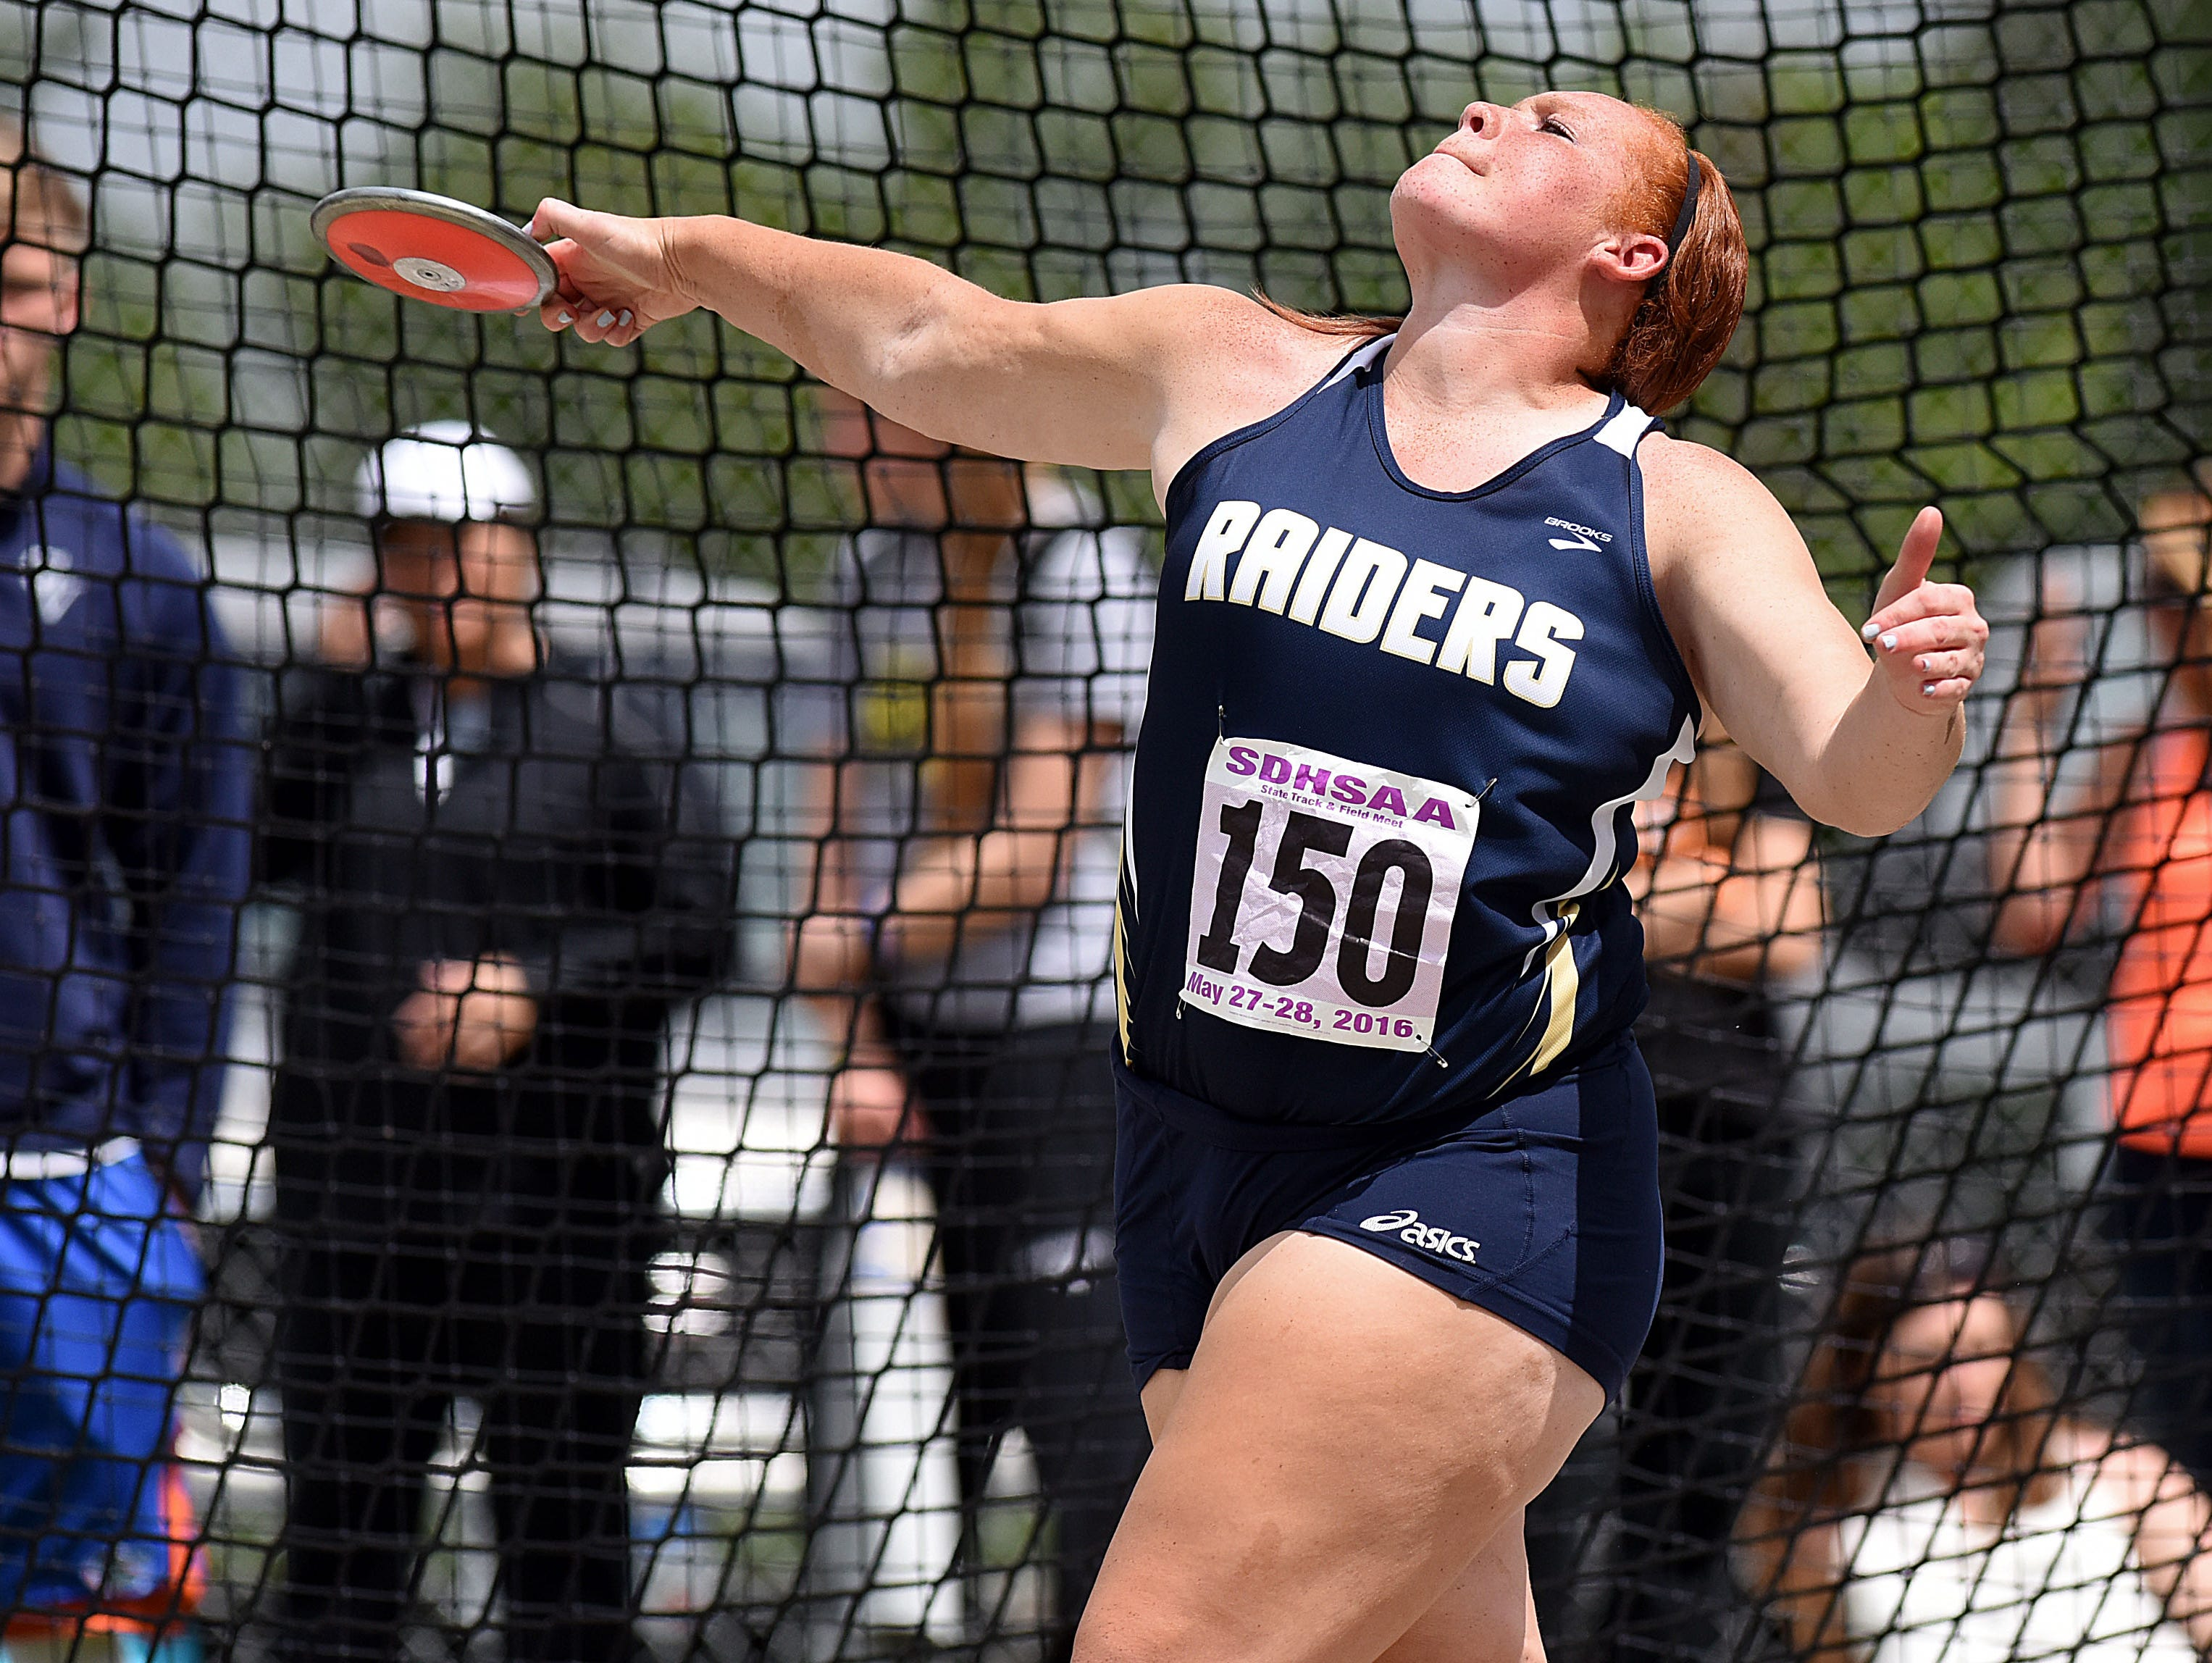 Gayville-Volin's Traia Hubbard competes in the Class B girls discuss field event during the 2016 SD State Track and Field Meet at Howard Wood Field on Saturday, May 28, 2016.